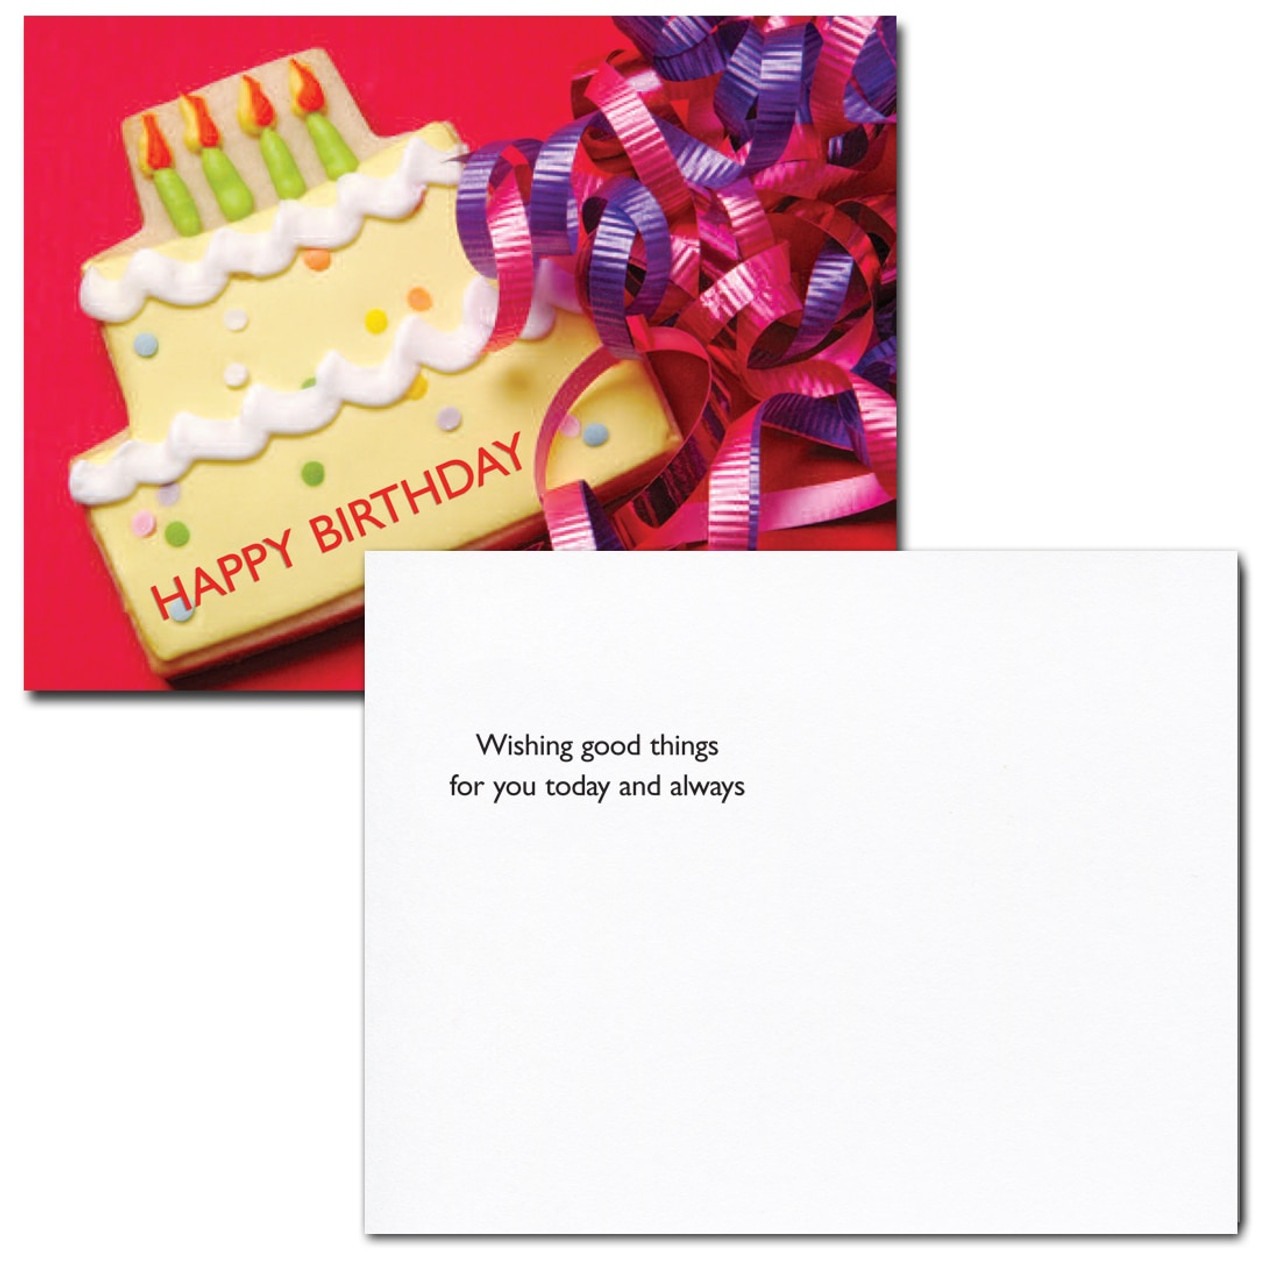 Cookie Cake Birthday Postcard. Greeting reads: Wishing good things for you today and always